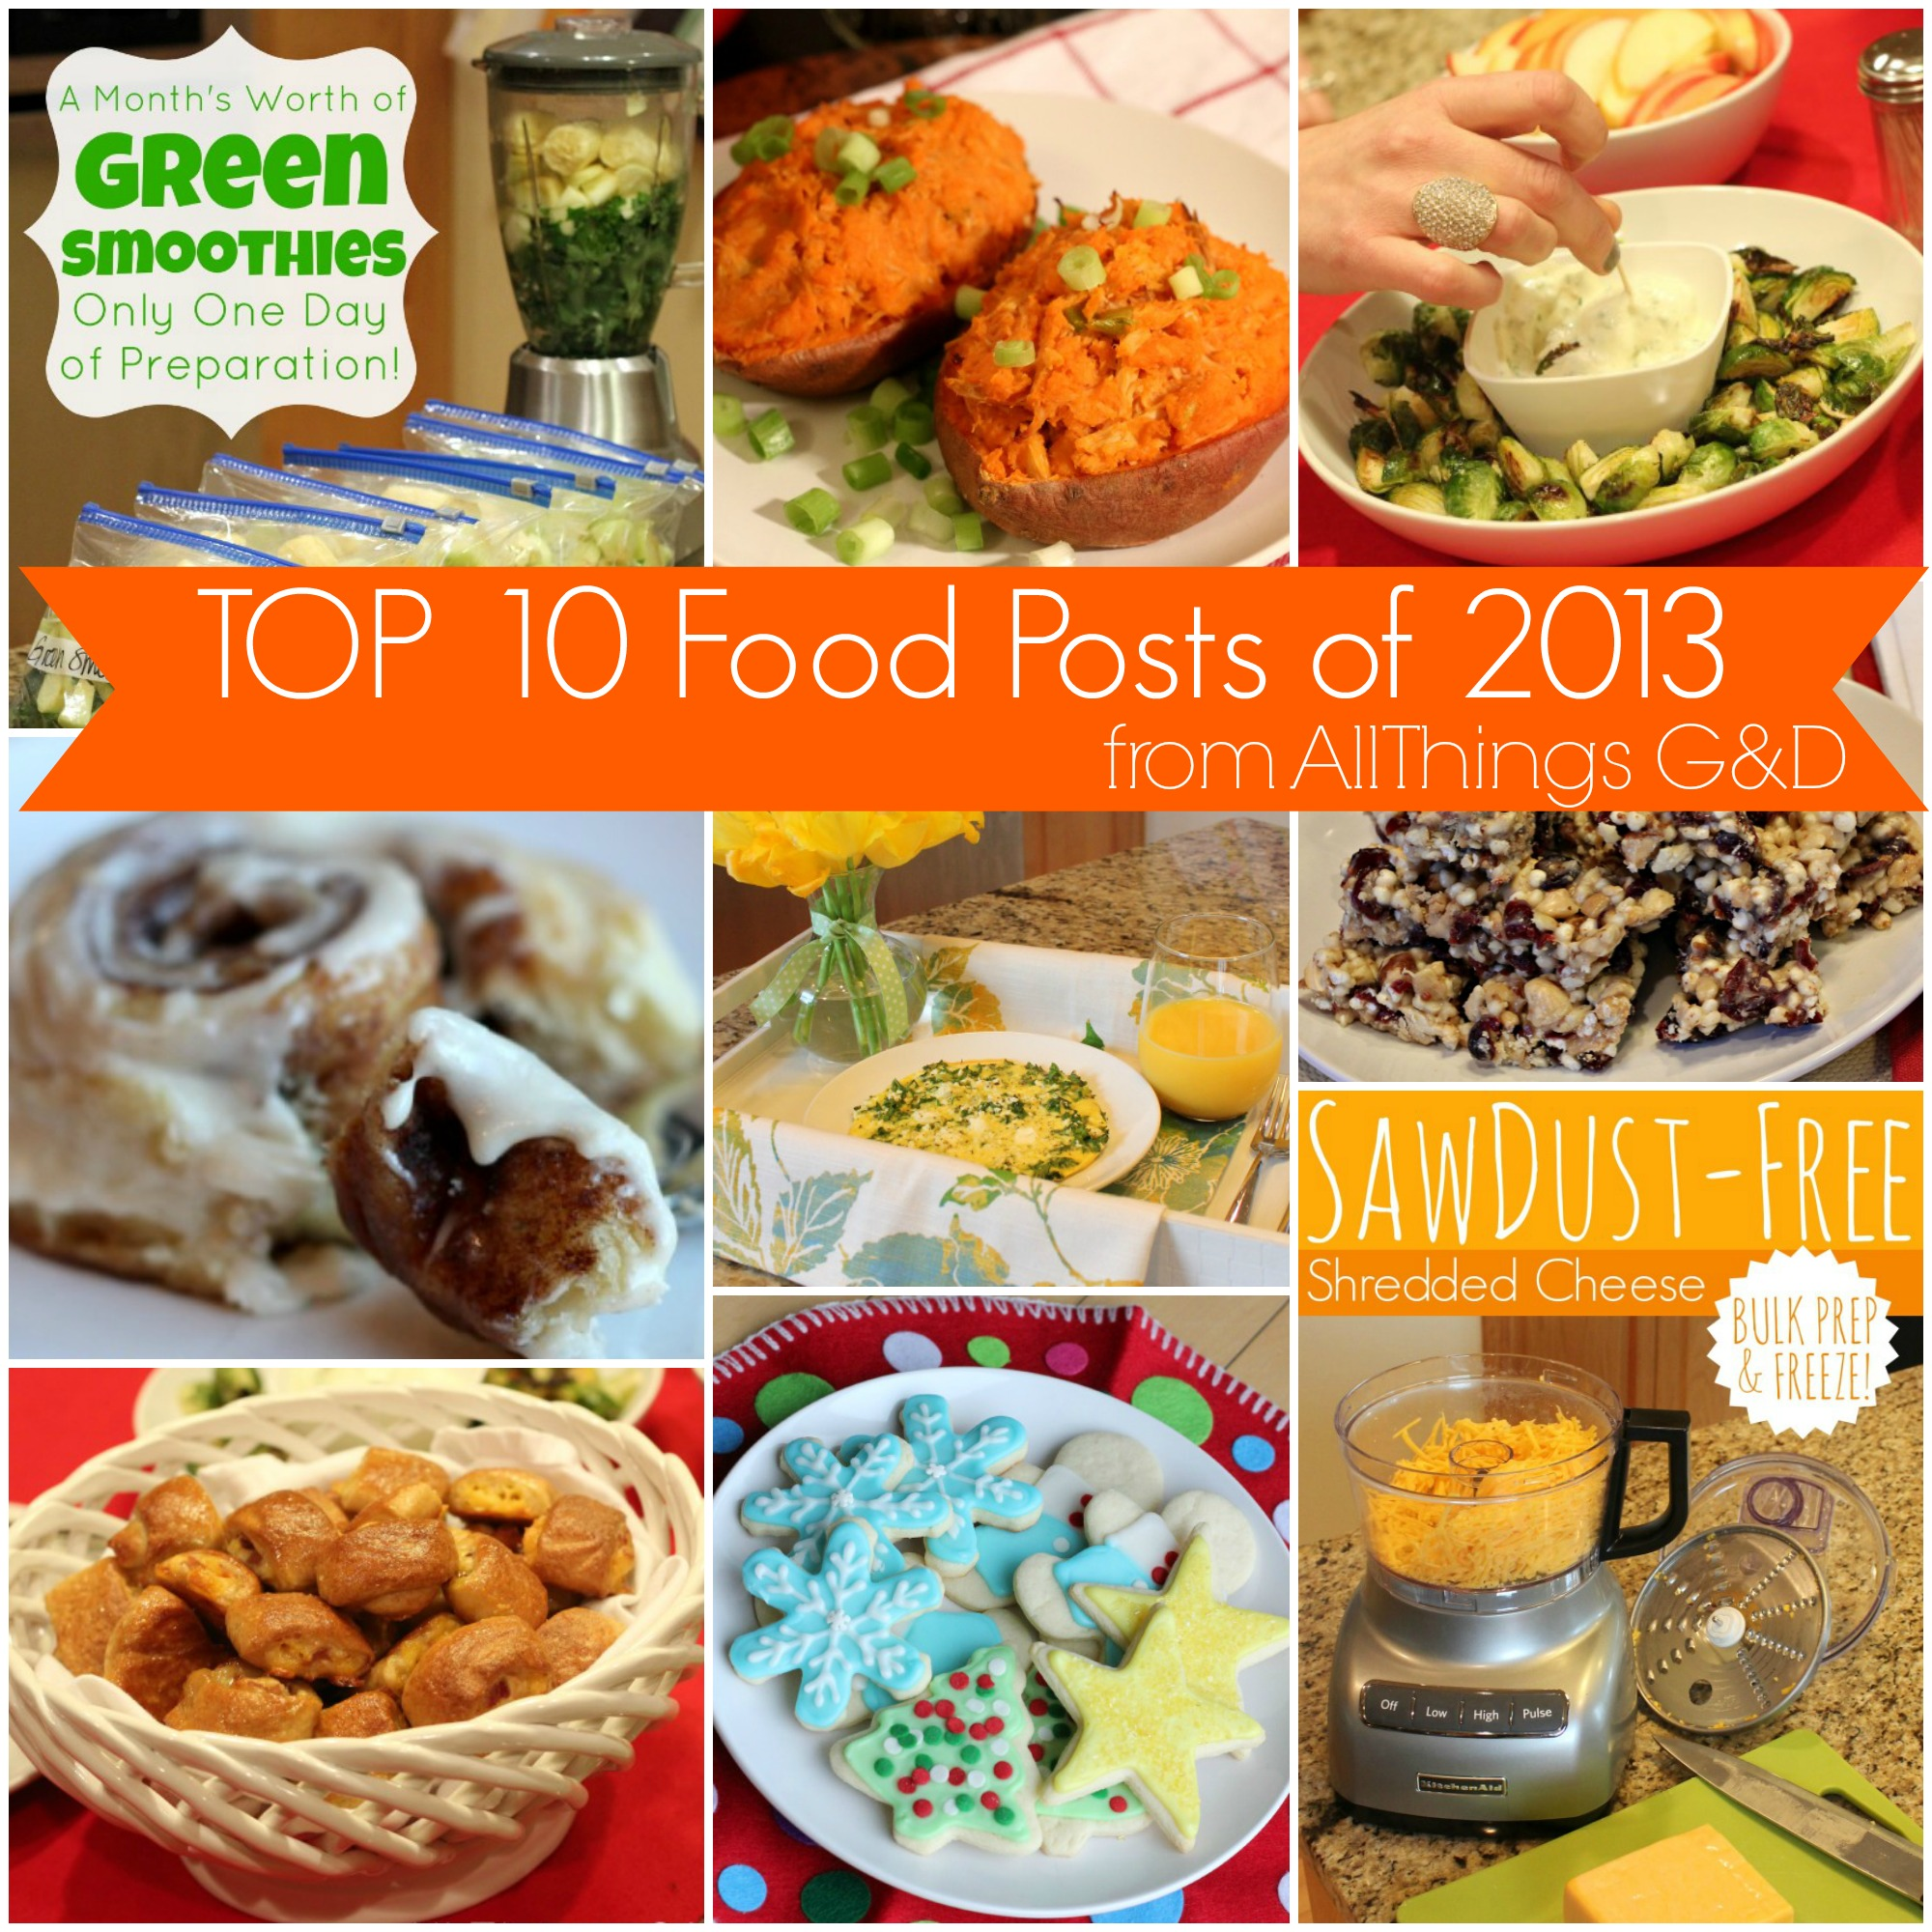 Atg Amp D Top 10 Food Posts Of 2013 All Things G Amp D